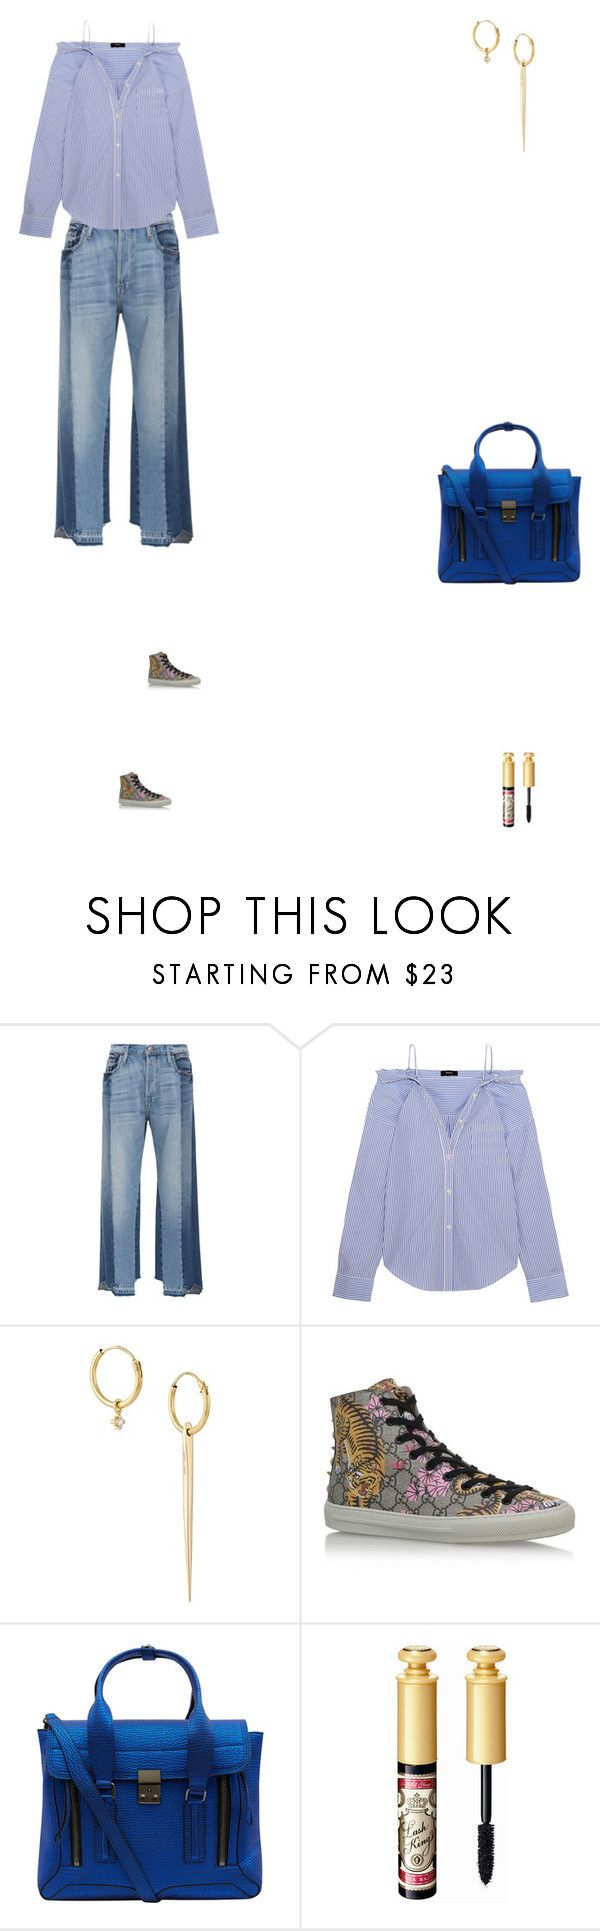 """""""Grace"""" by zoechengrace ❤ liked on Polyvore featuring Frame, Theory, Wouters & Hendrix Gold, Gucci and 3.1 Phillip Lim"""